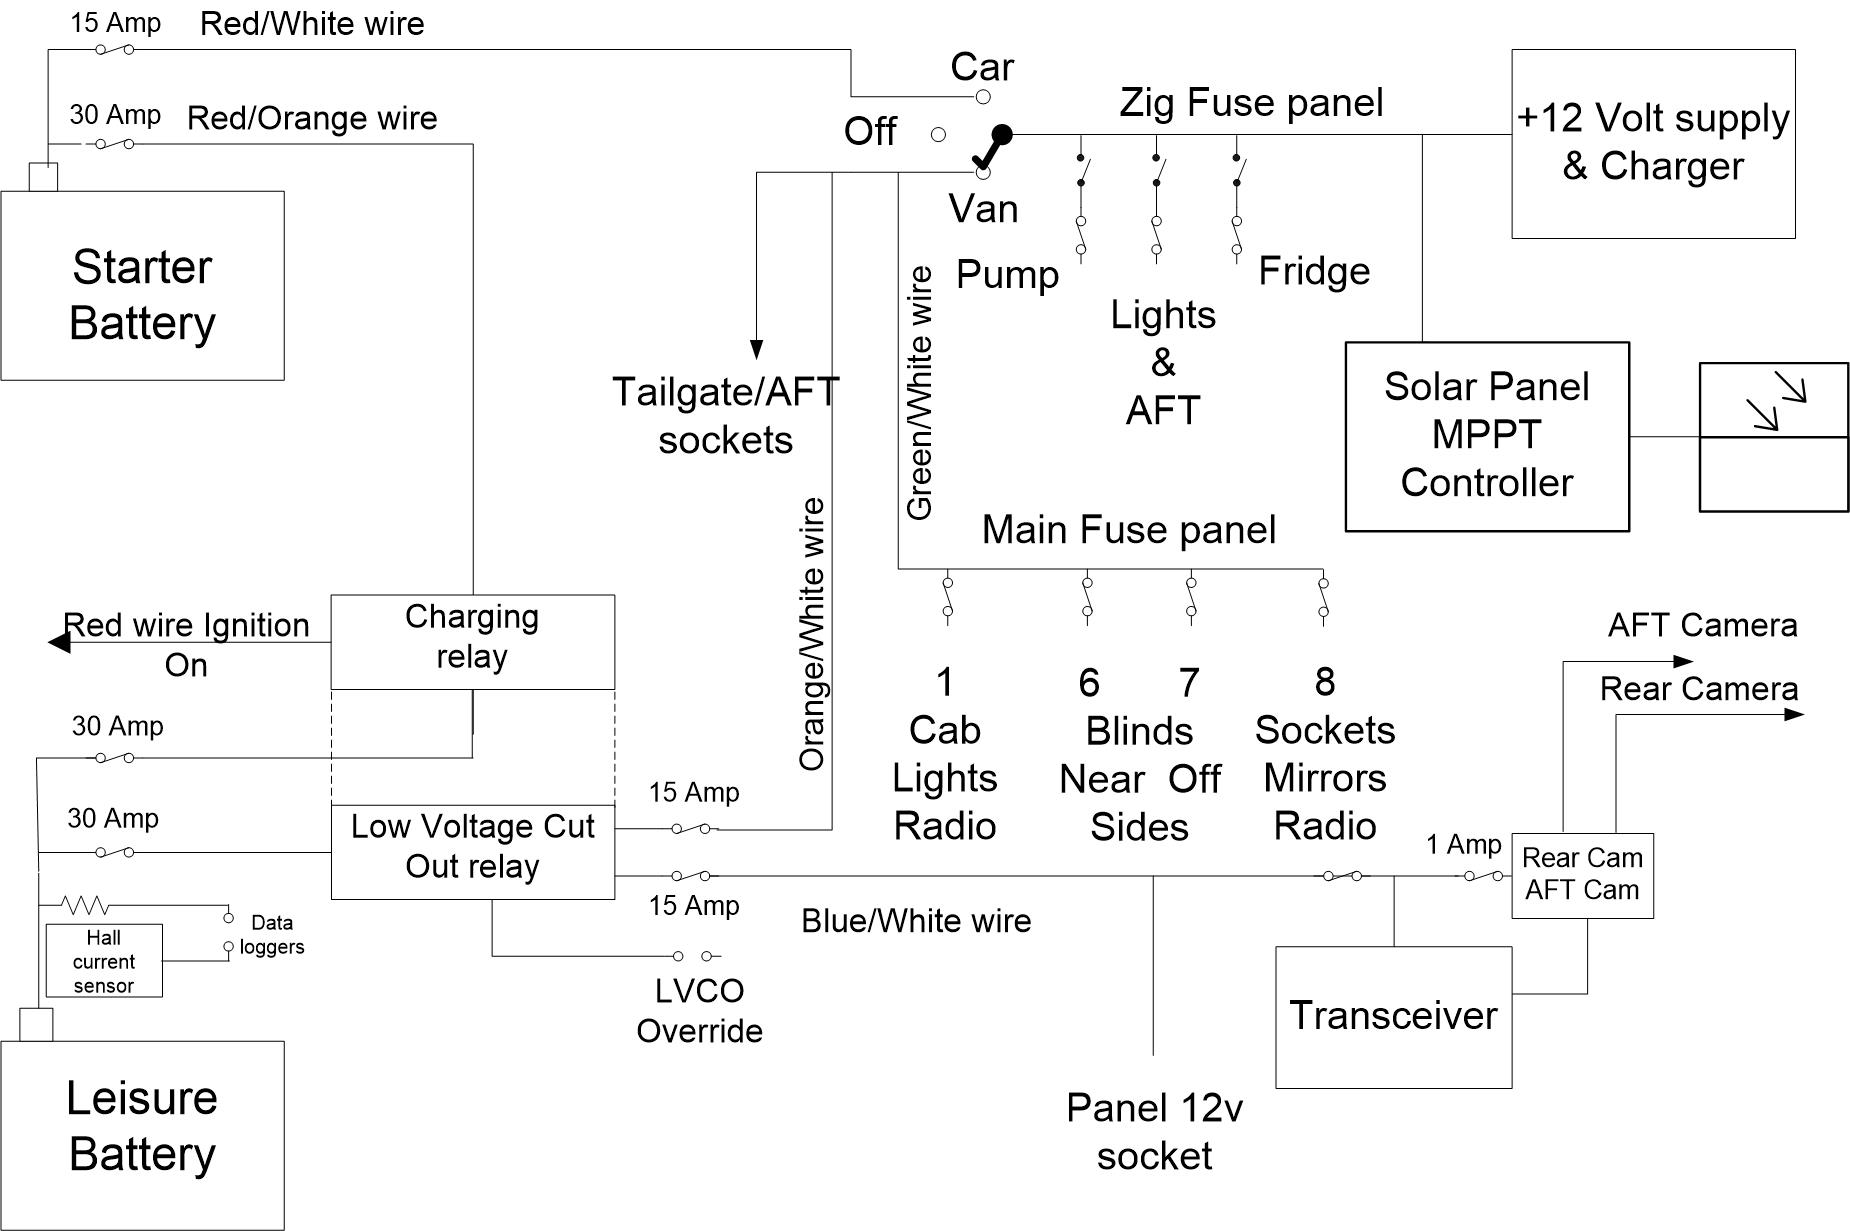 24 Volt Battery Bank Wiring Likewise 12v Battery Wiring Diagram